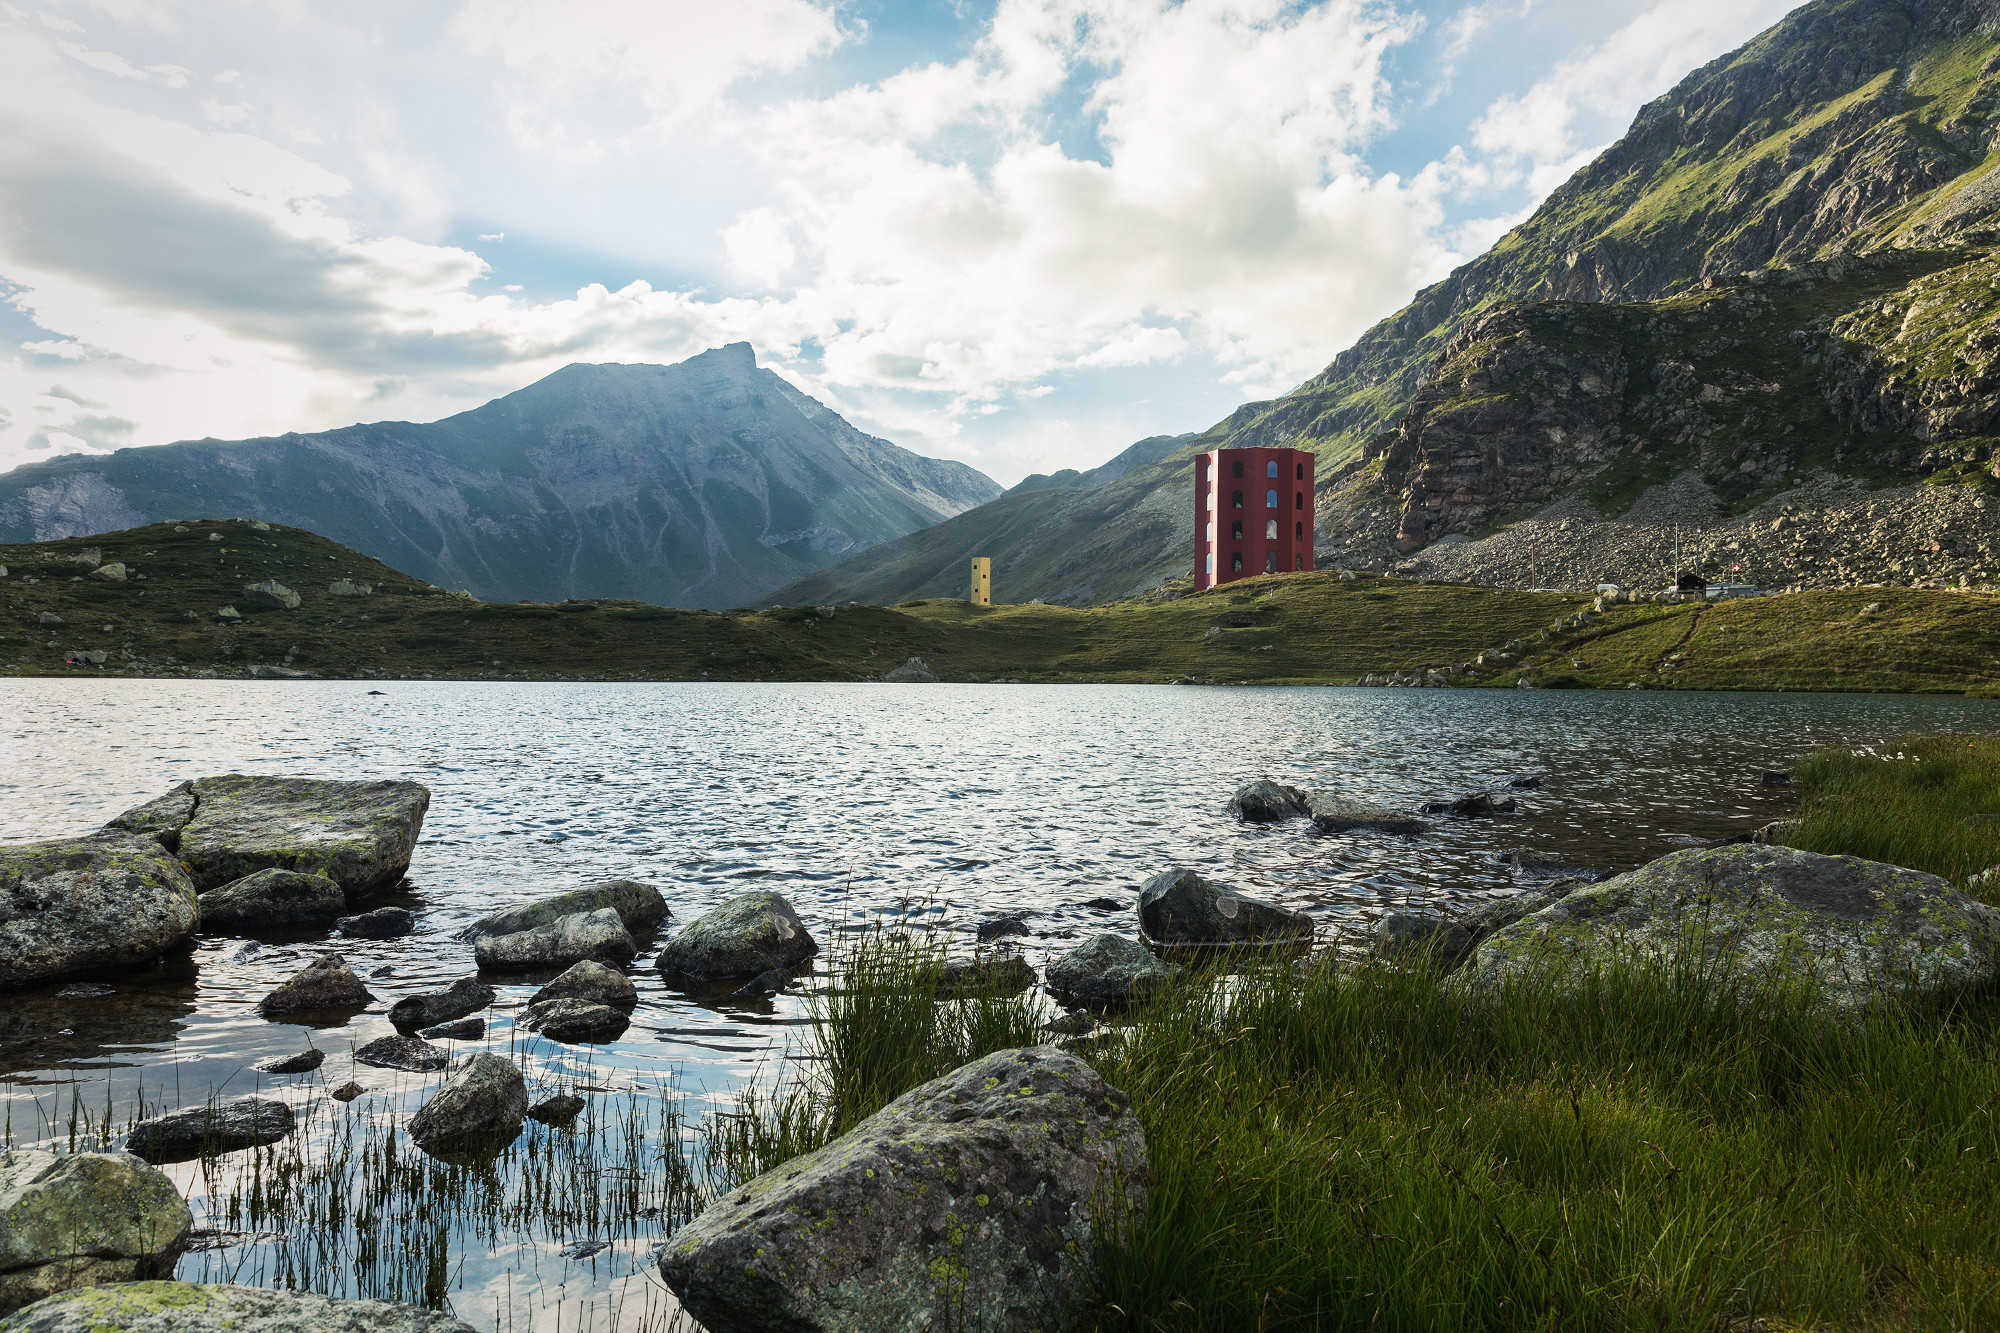 The building stands at an altitude of 2,300 metres high at the Julier Pass in the Swiss Alps.